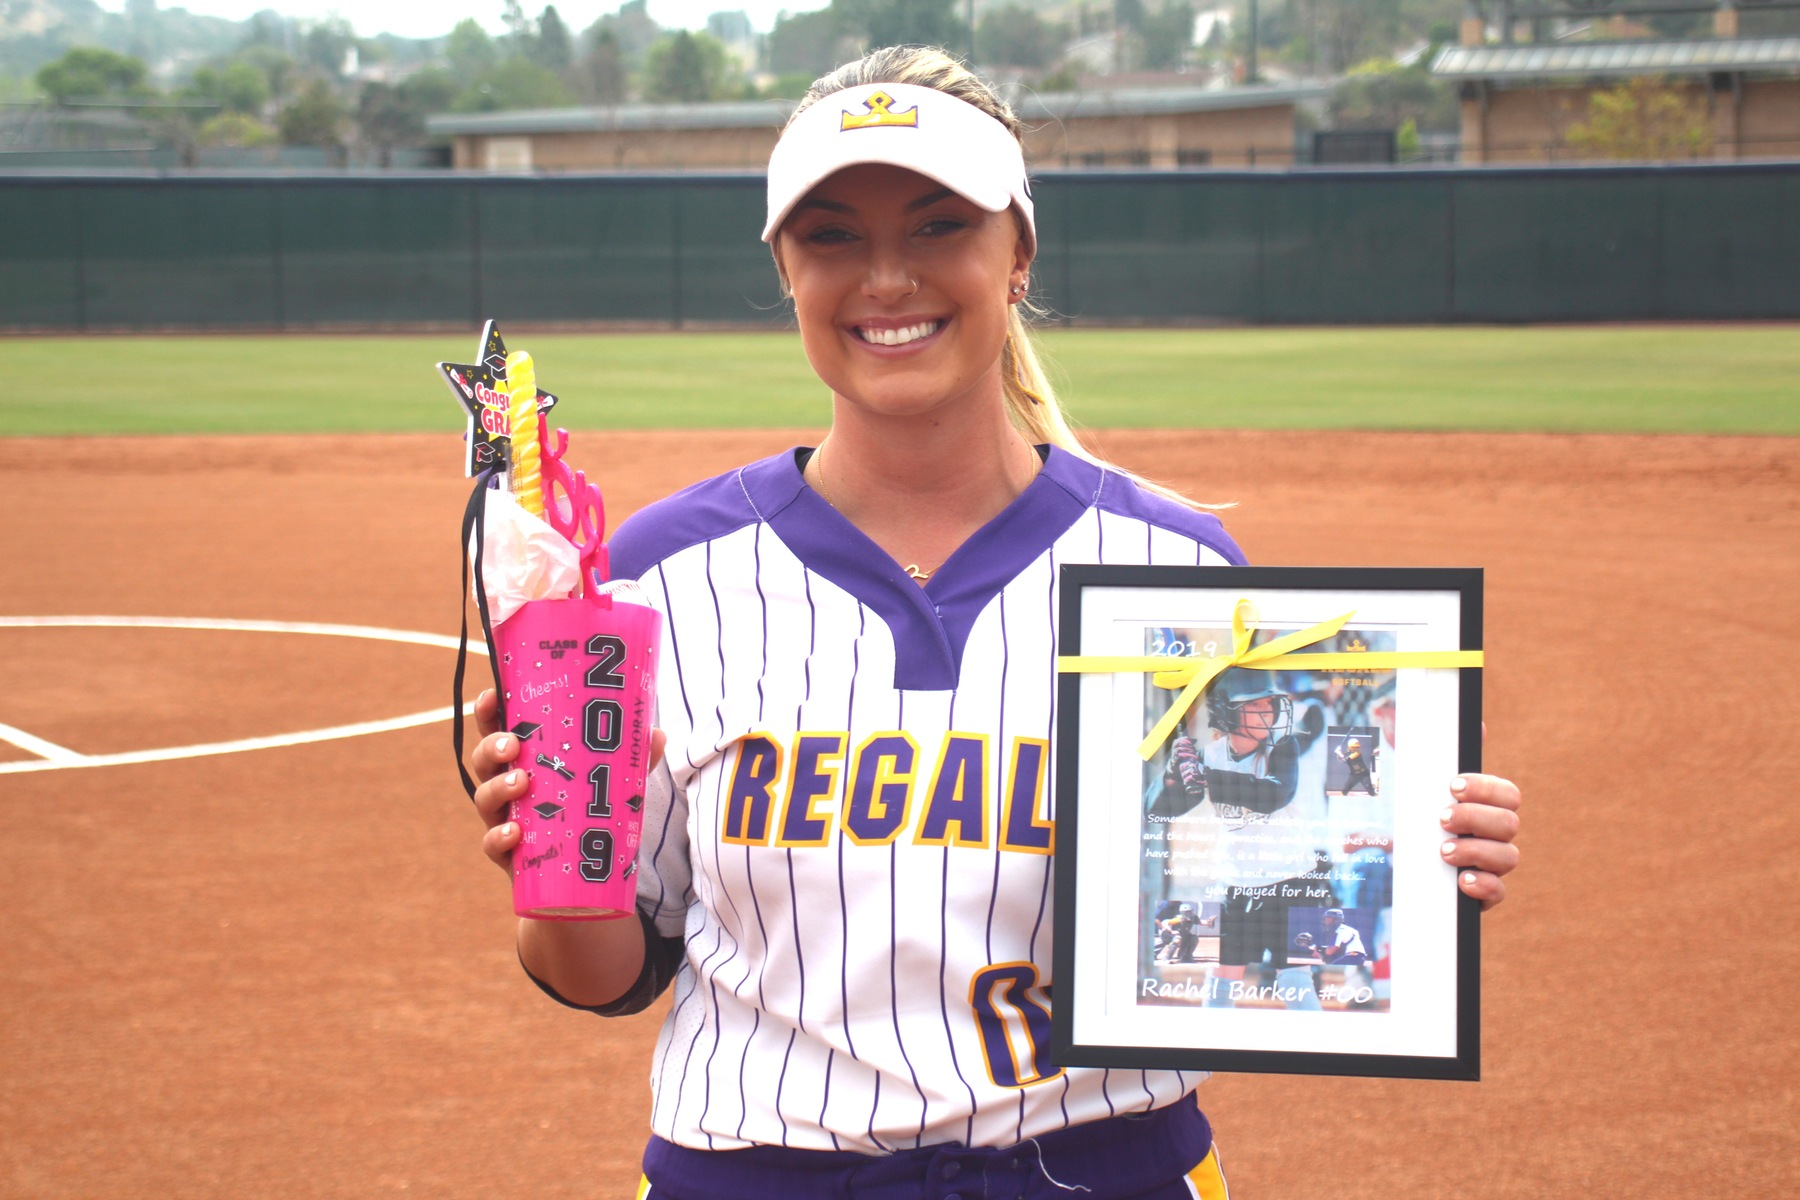 Regals' Heroics on Senior Day; Softball Ends Season with Doublerheader Sweep of Tigers